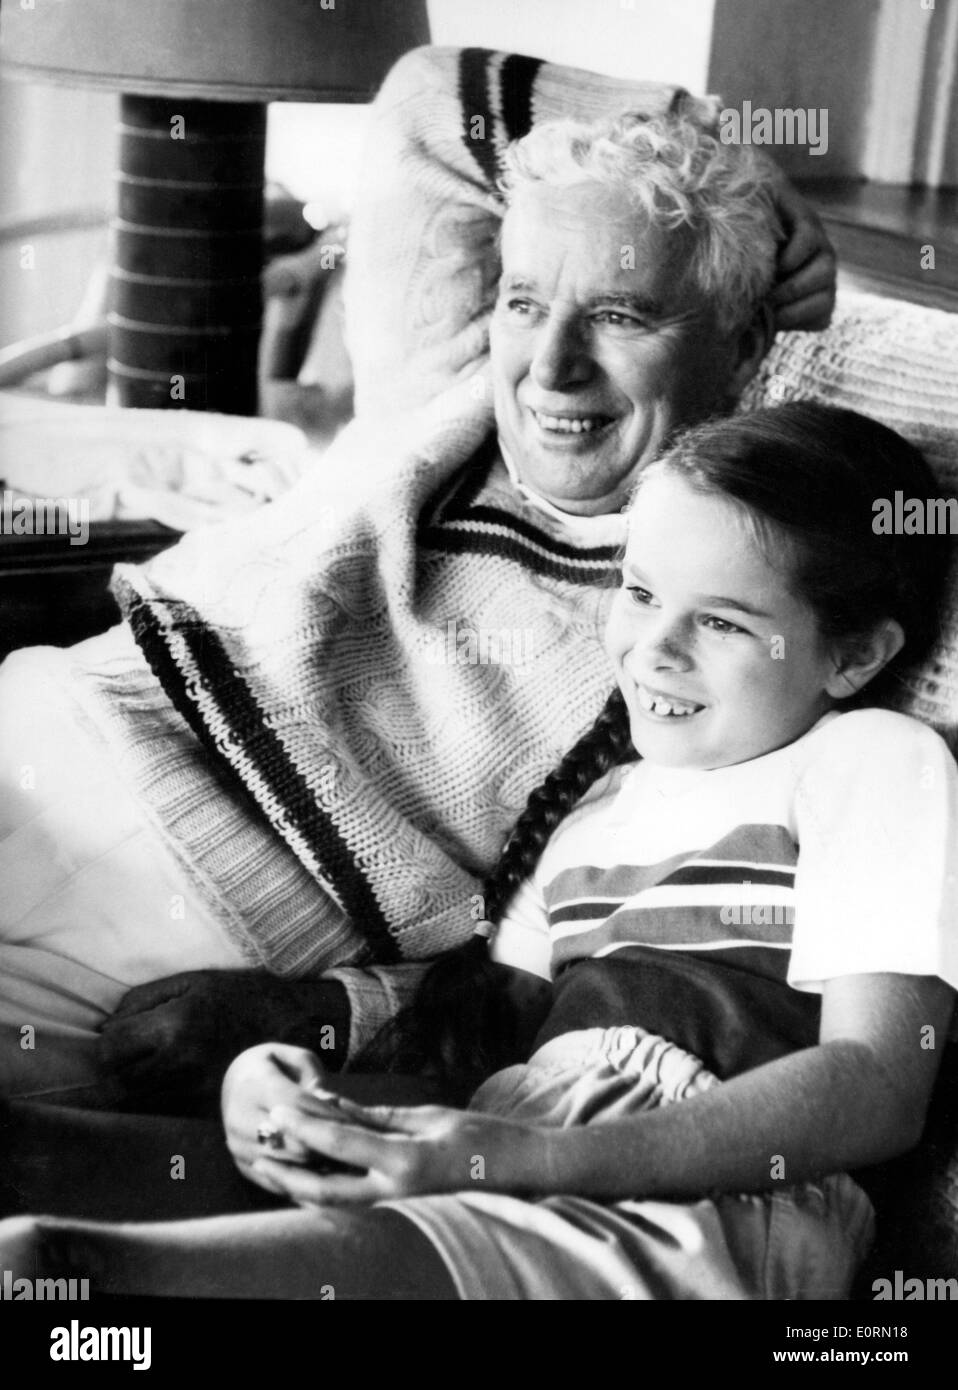 Actor Charlie Chaplin watching television with his daughter Geraldine - Stock Image